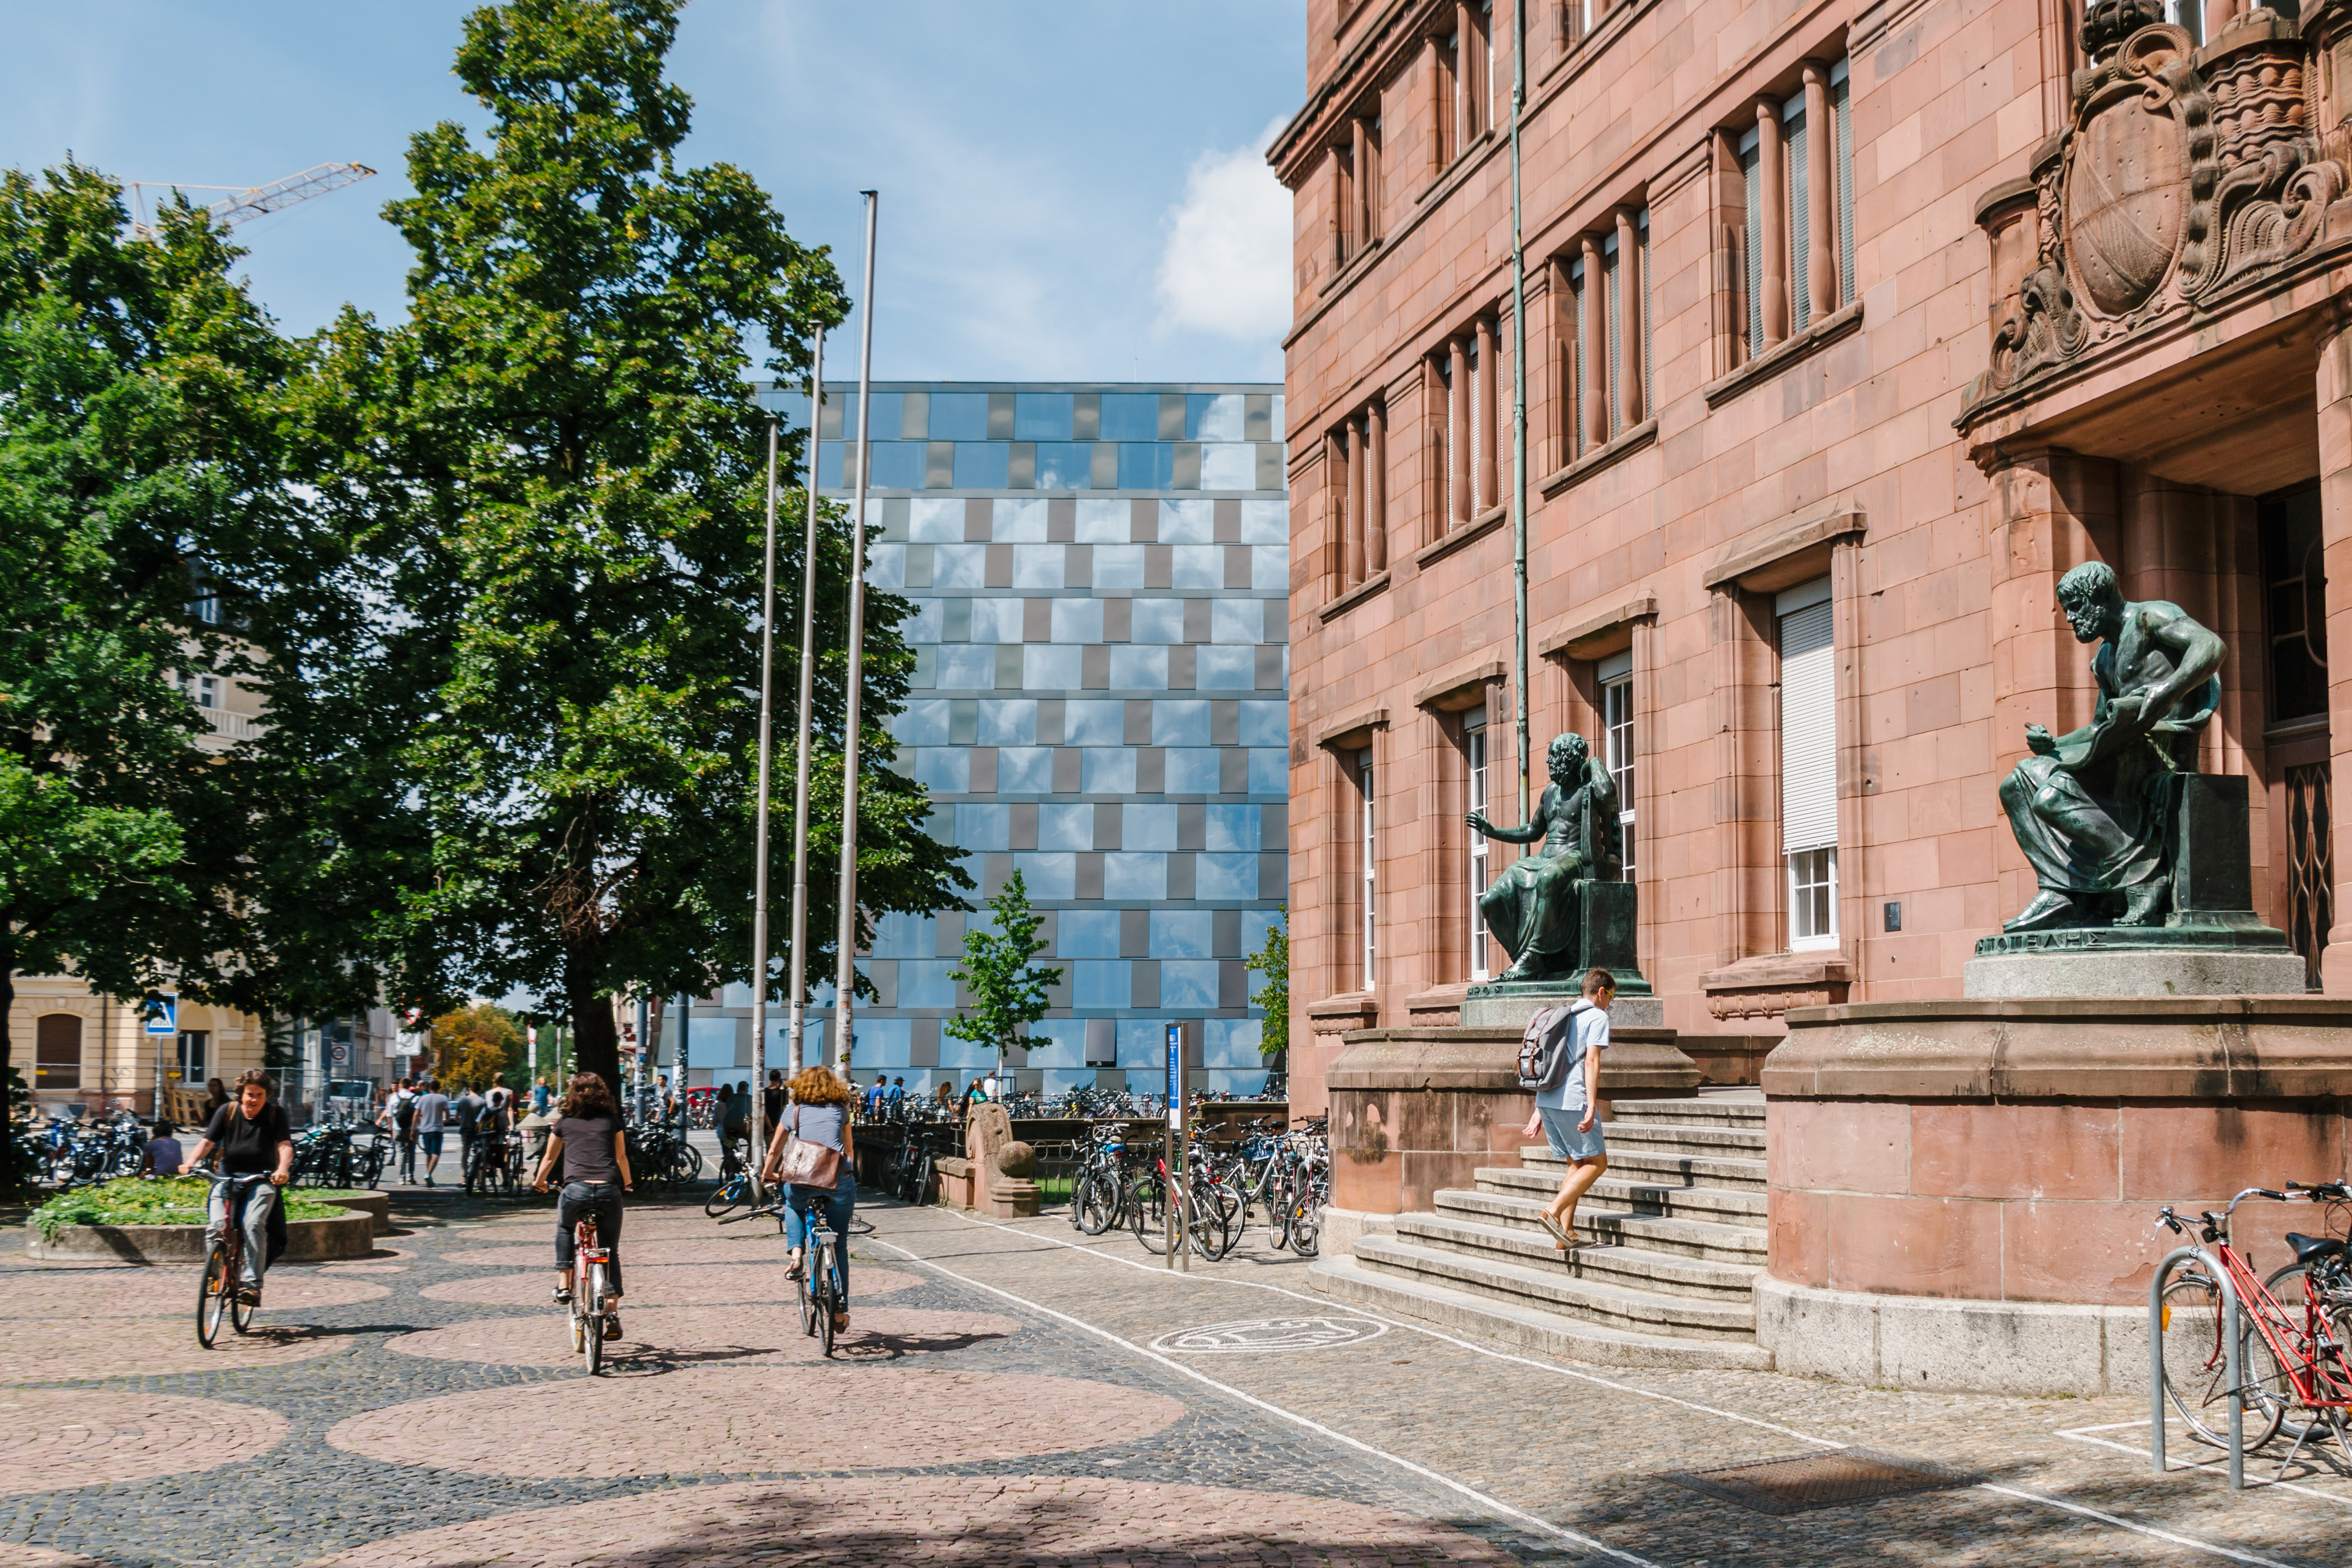 Marie S. Curie FRIAS COFUND Fellowship Programme (FCFP) in Germany